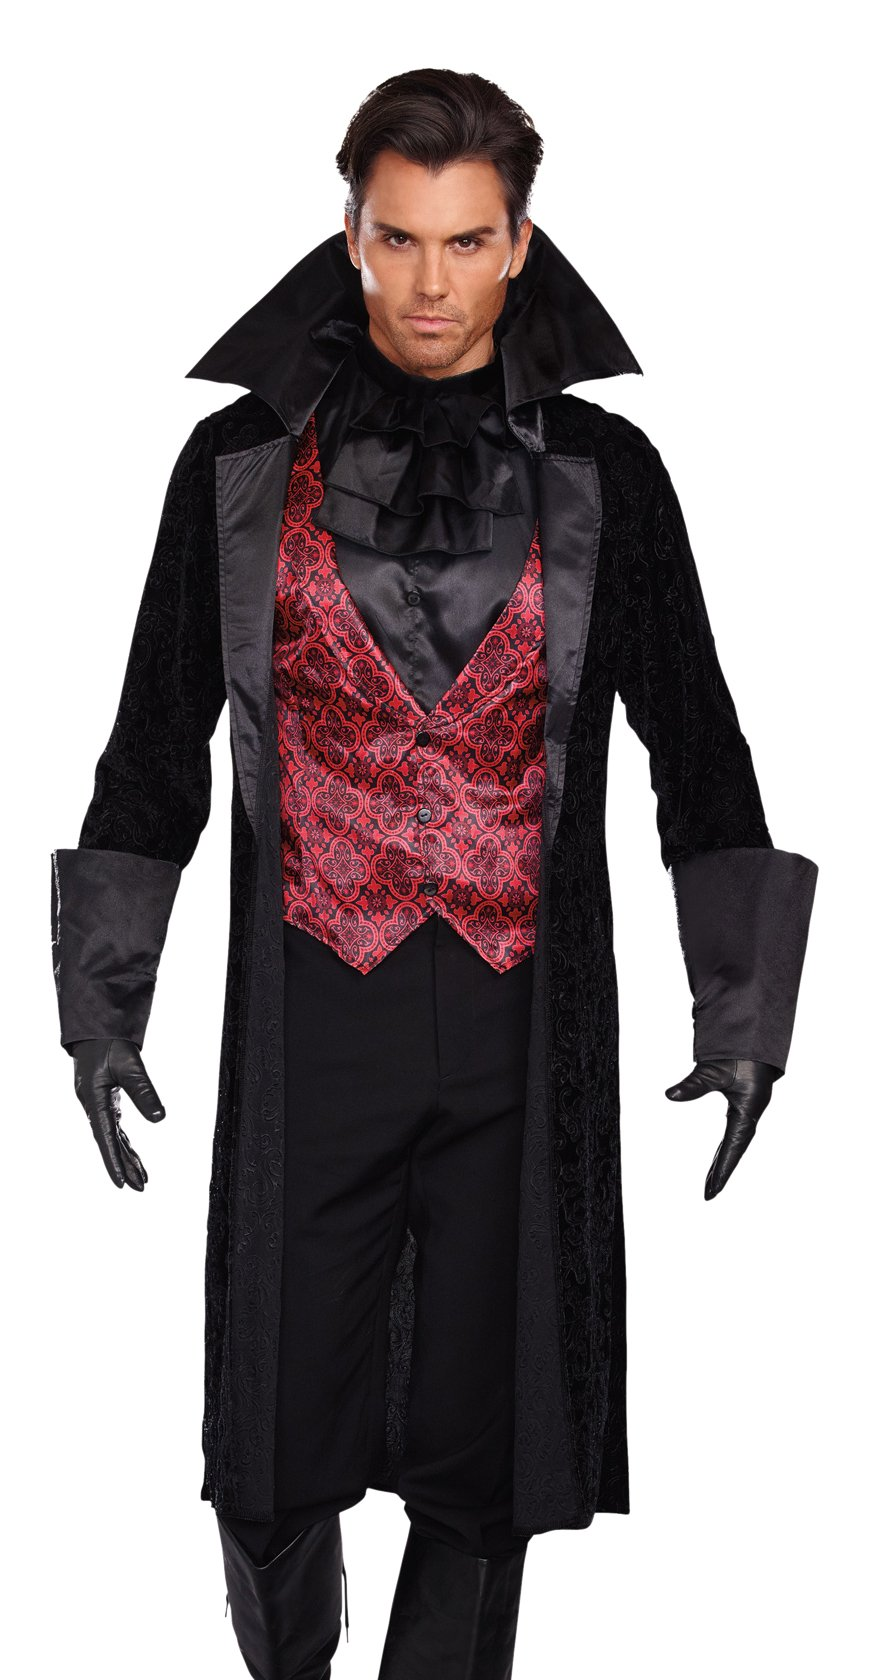 Dreamgirl Men's Bloody Handsome Costume, Black/Red, X-Large